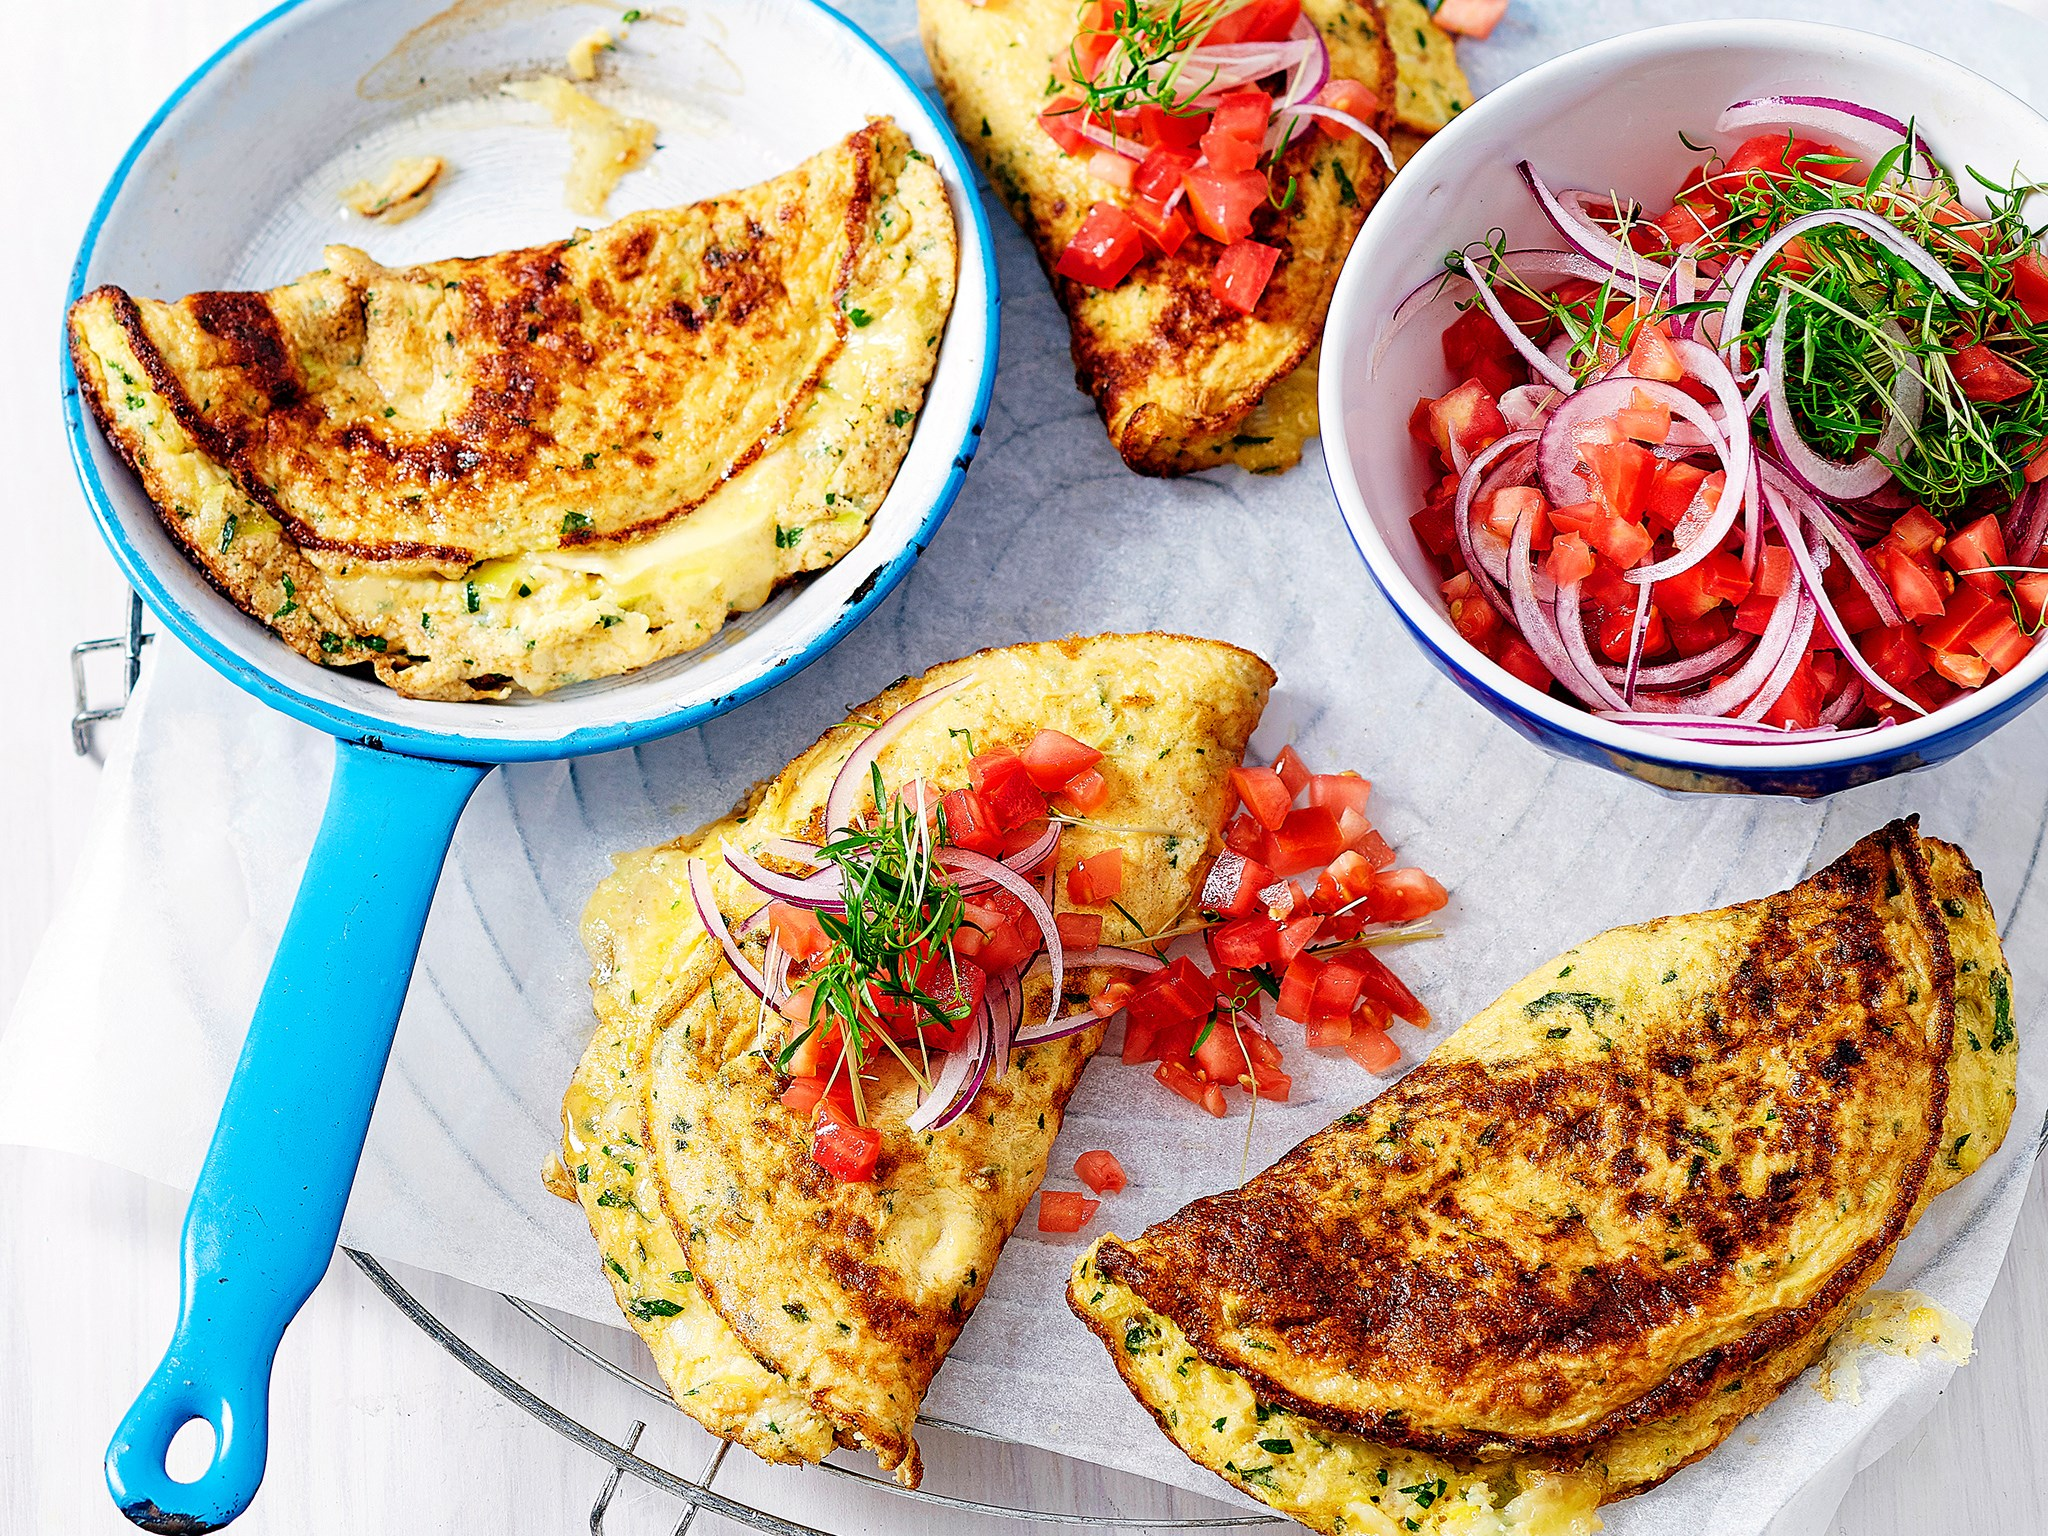 Cauliflower and brie omelette